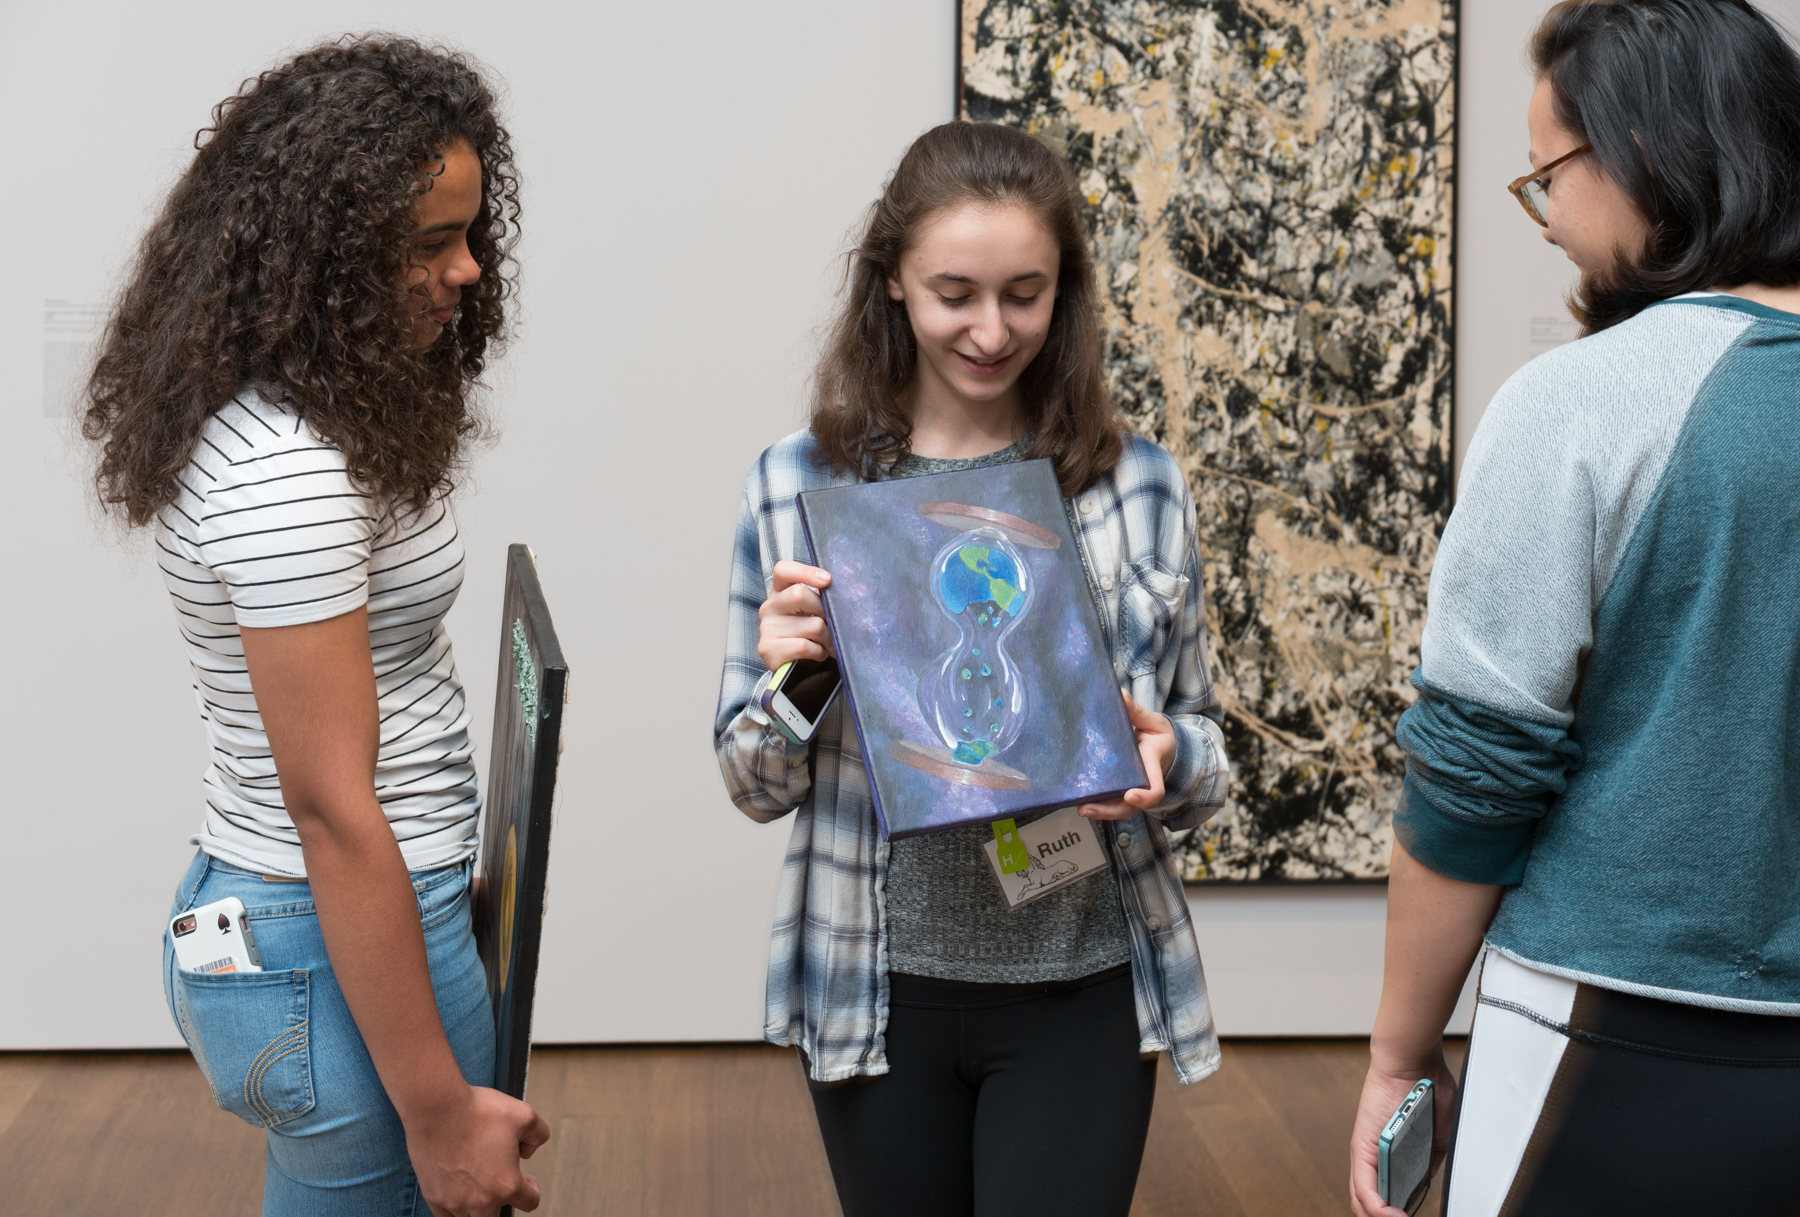 For their final projects, the CRLS students presented their original creations in front of the artwork that inspired them. Here, Ruth Albert-Lyons, a CRLS junior, displays her painting inspired by environmental issues. Photo by Matthew Monteith.